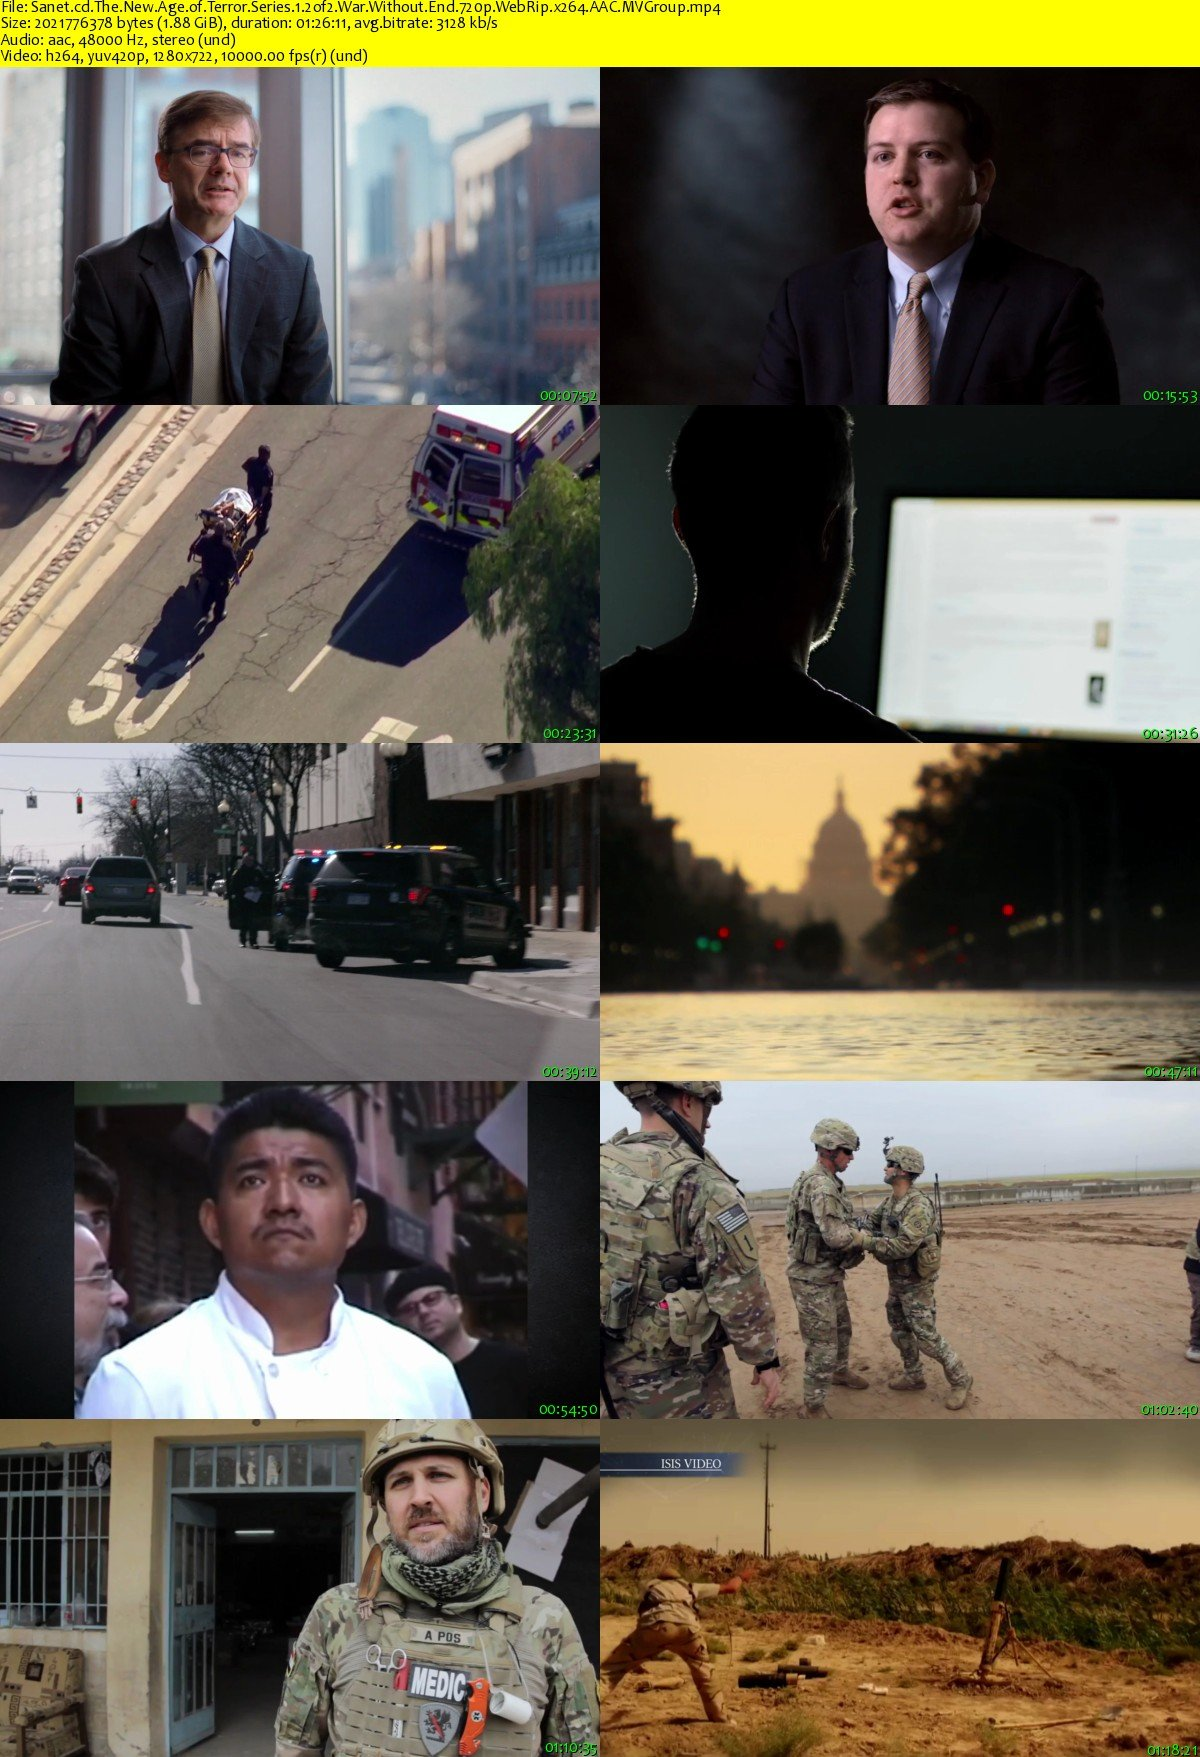 download history channel the new age of terror series 1 2017 720p webrip x264 aac mvgroup. Black Bedroom Furniture Sets. Home Design Ideas